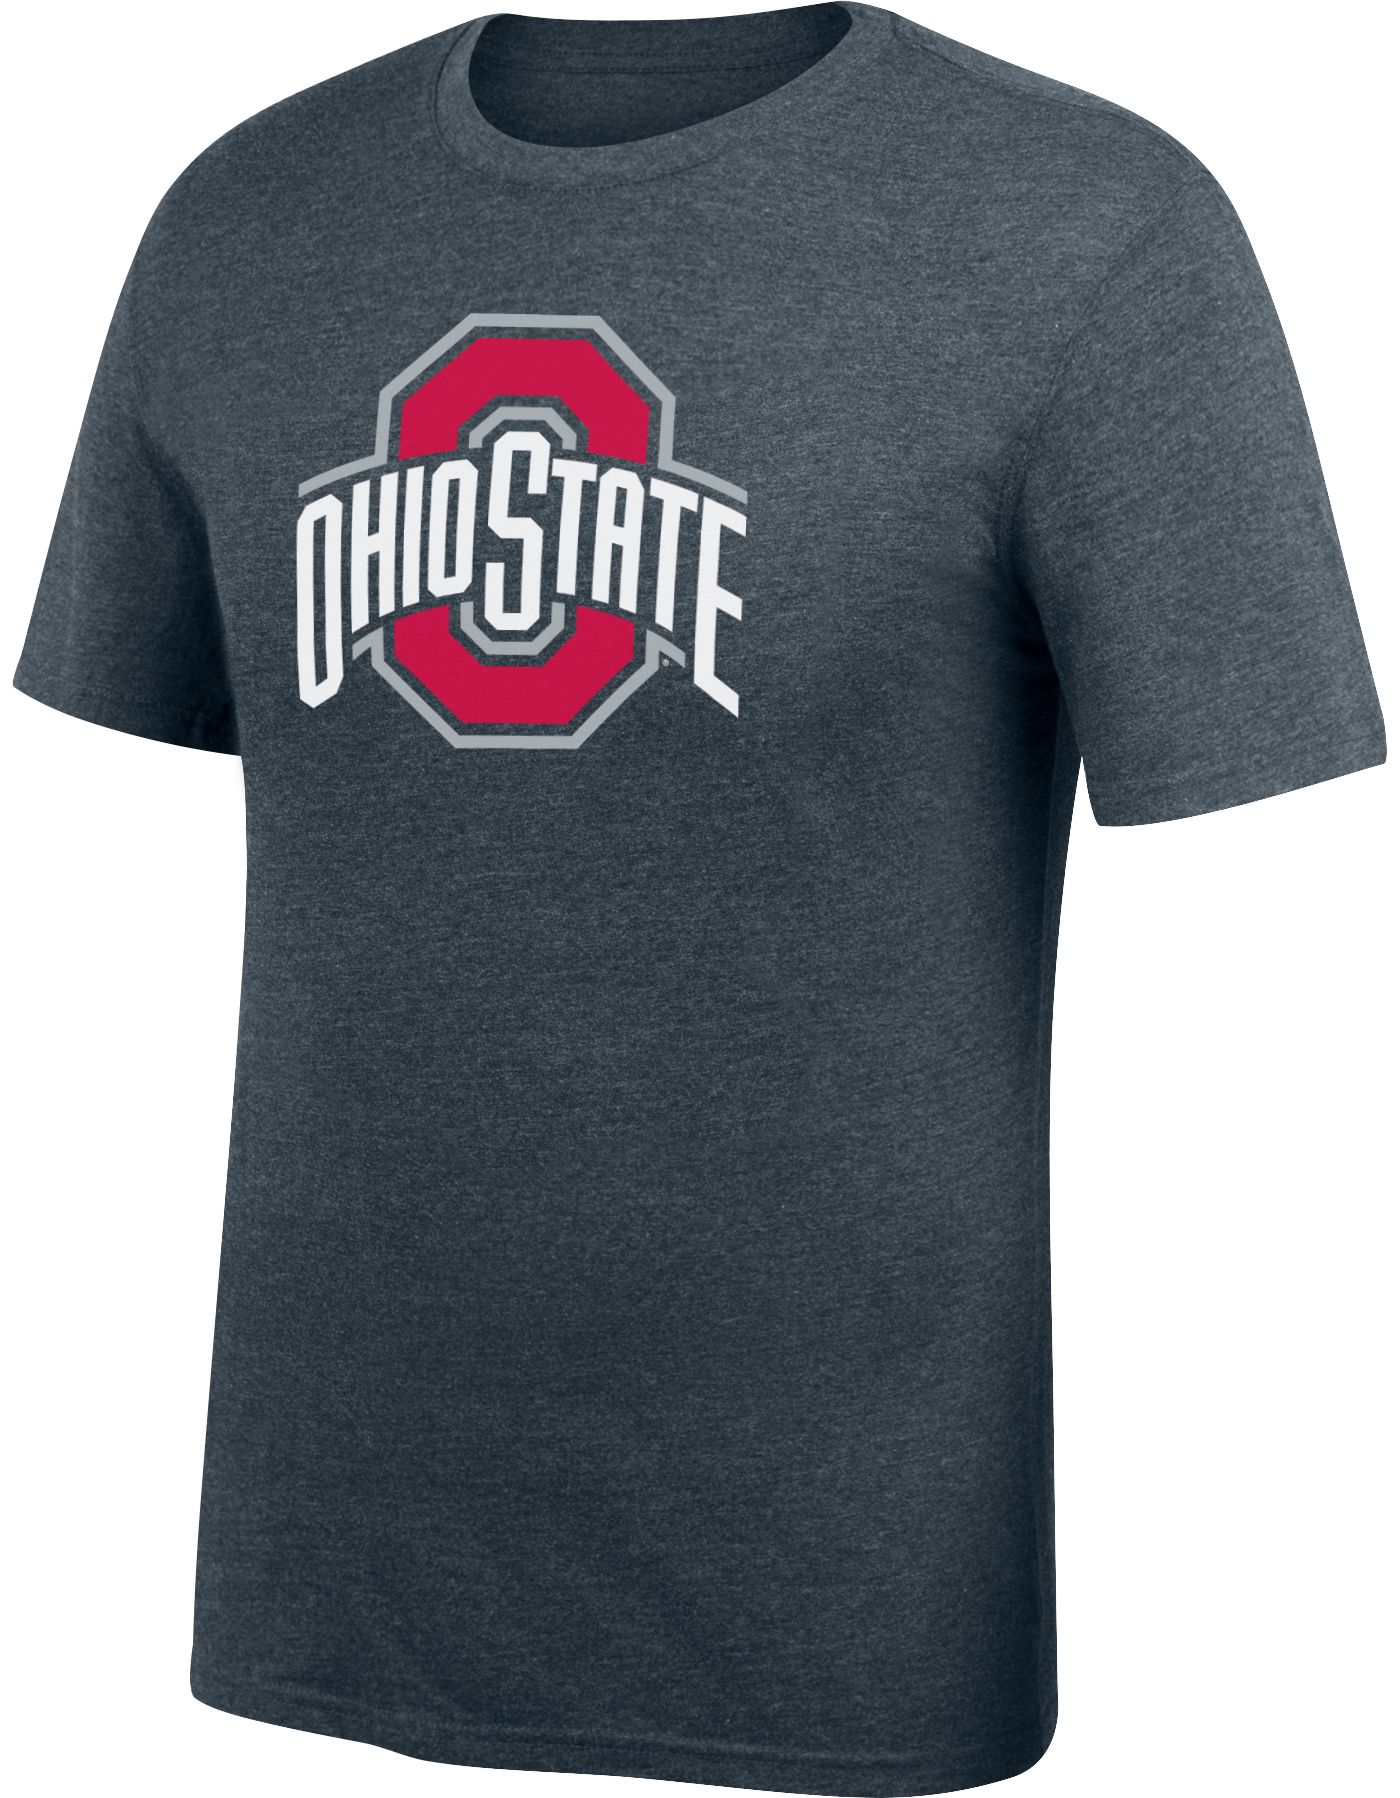 Scarlet & Gray Men's Ohio State Buckeyes Gray T-Shirt